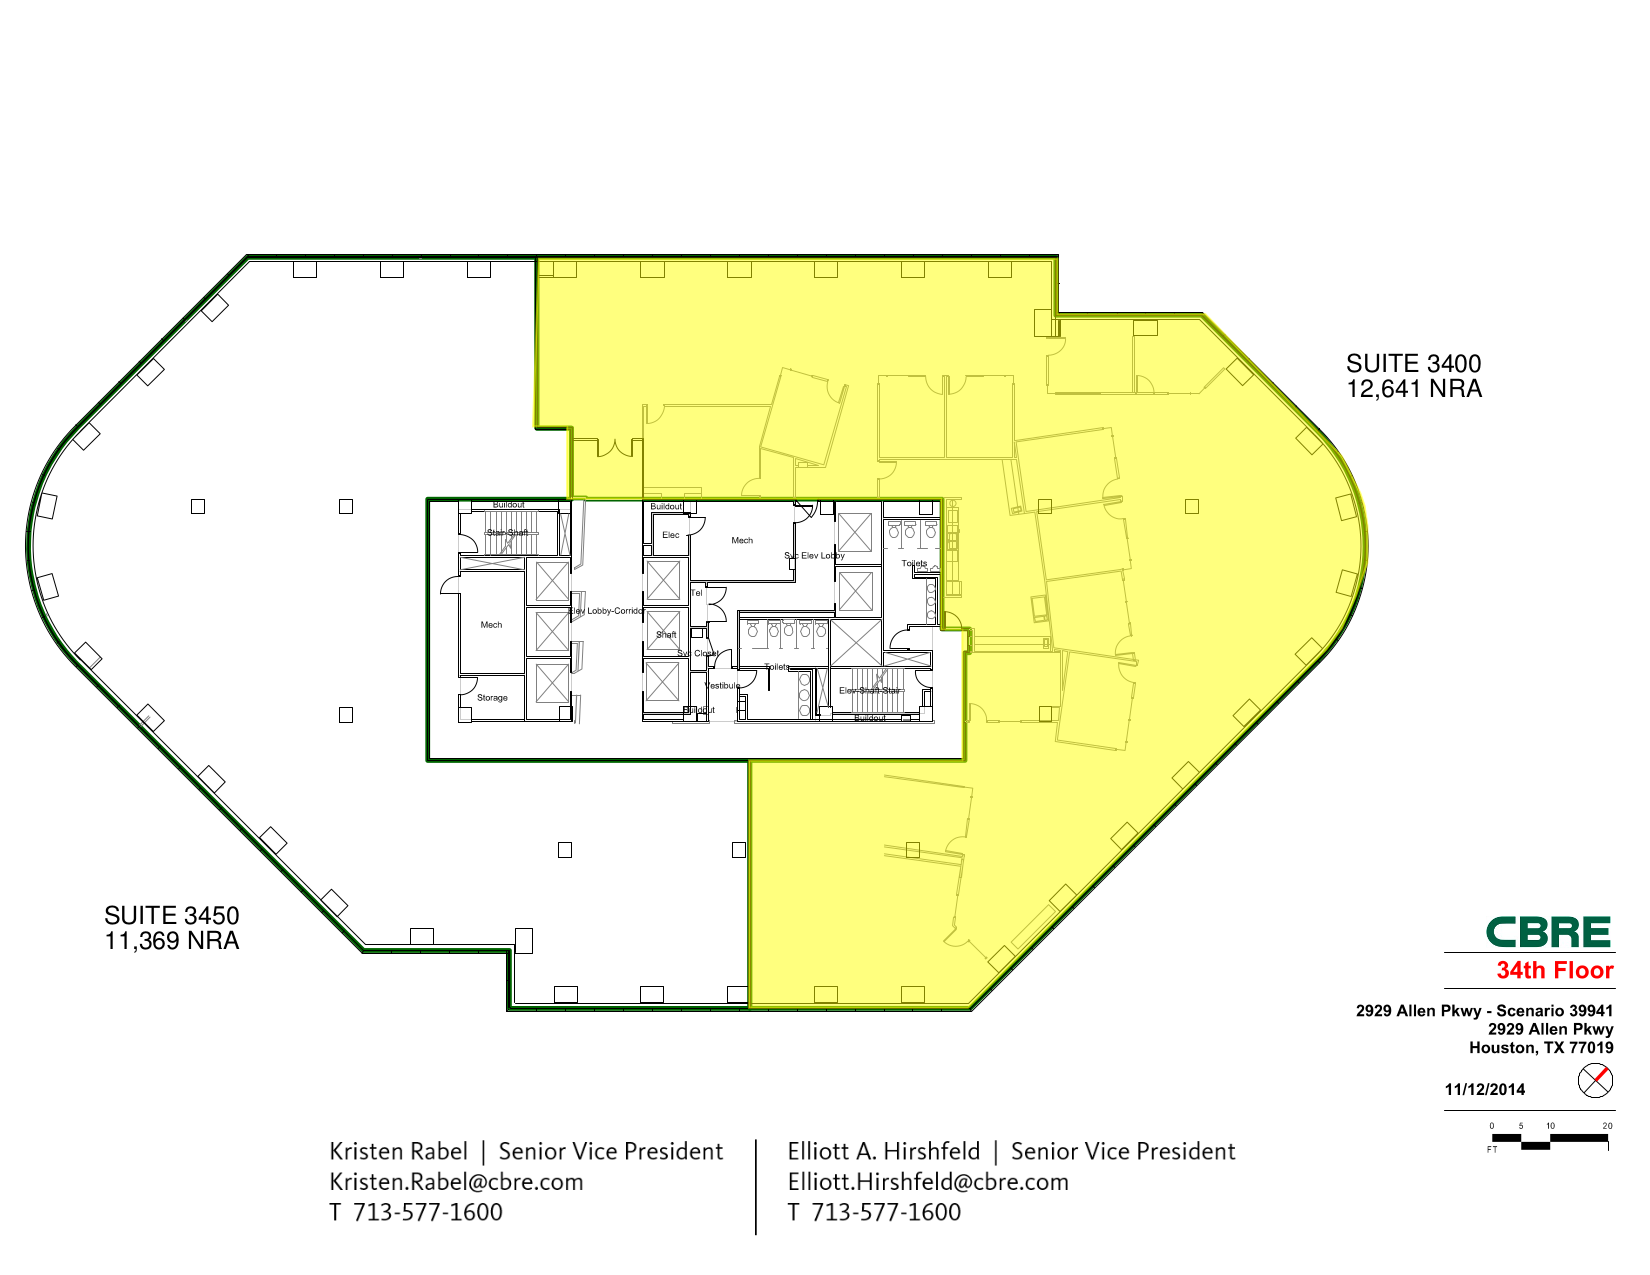 America tower 2929 allen pkwy 34th floor unit 3400 vts for Vice president house floor plan